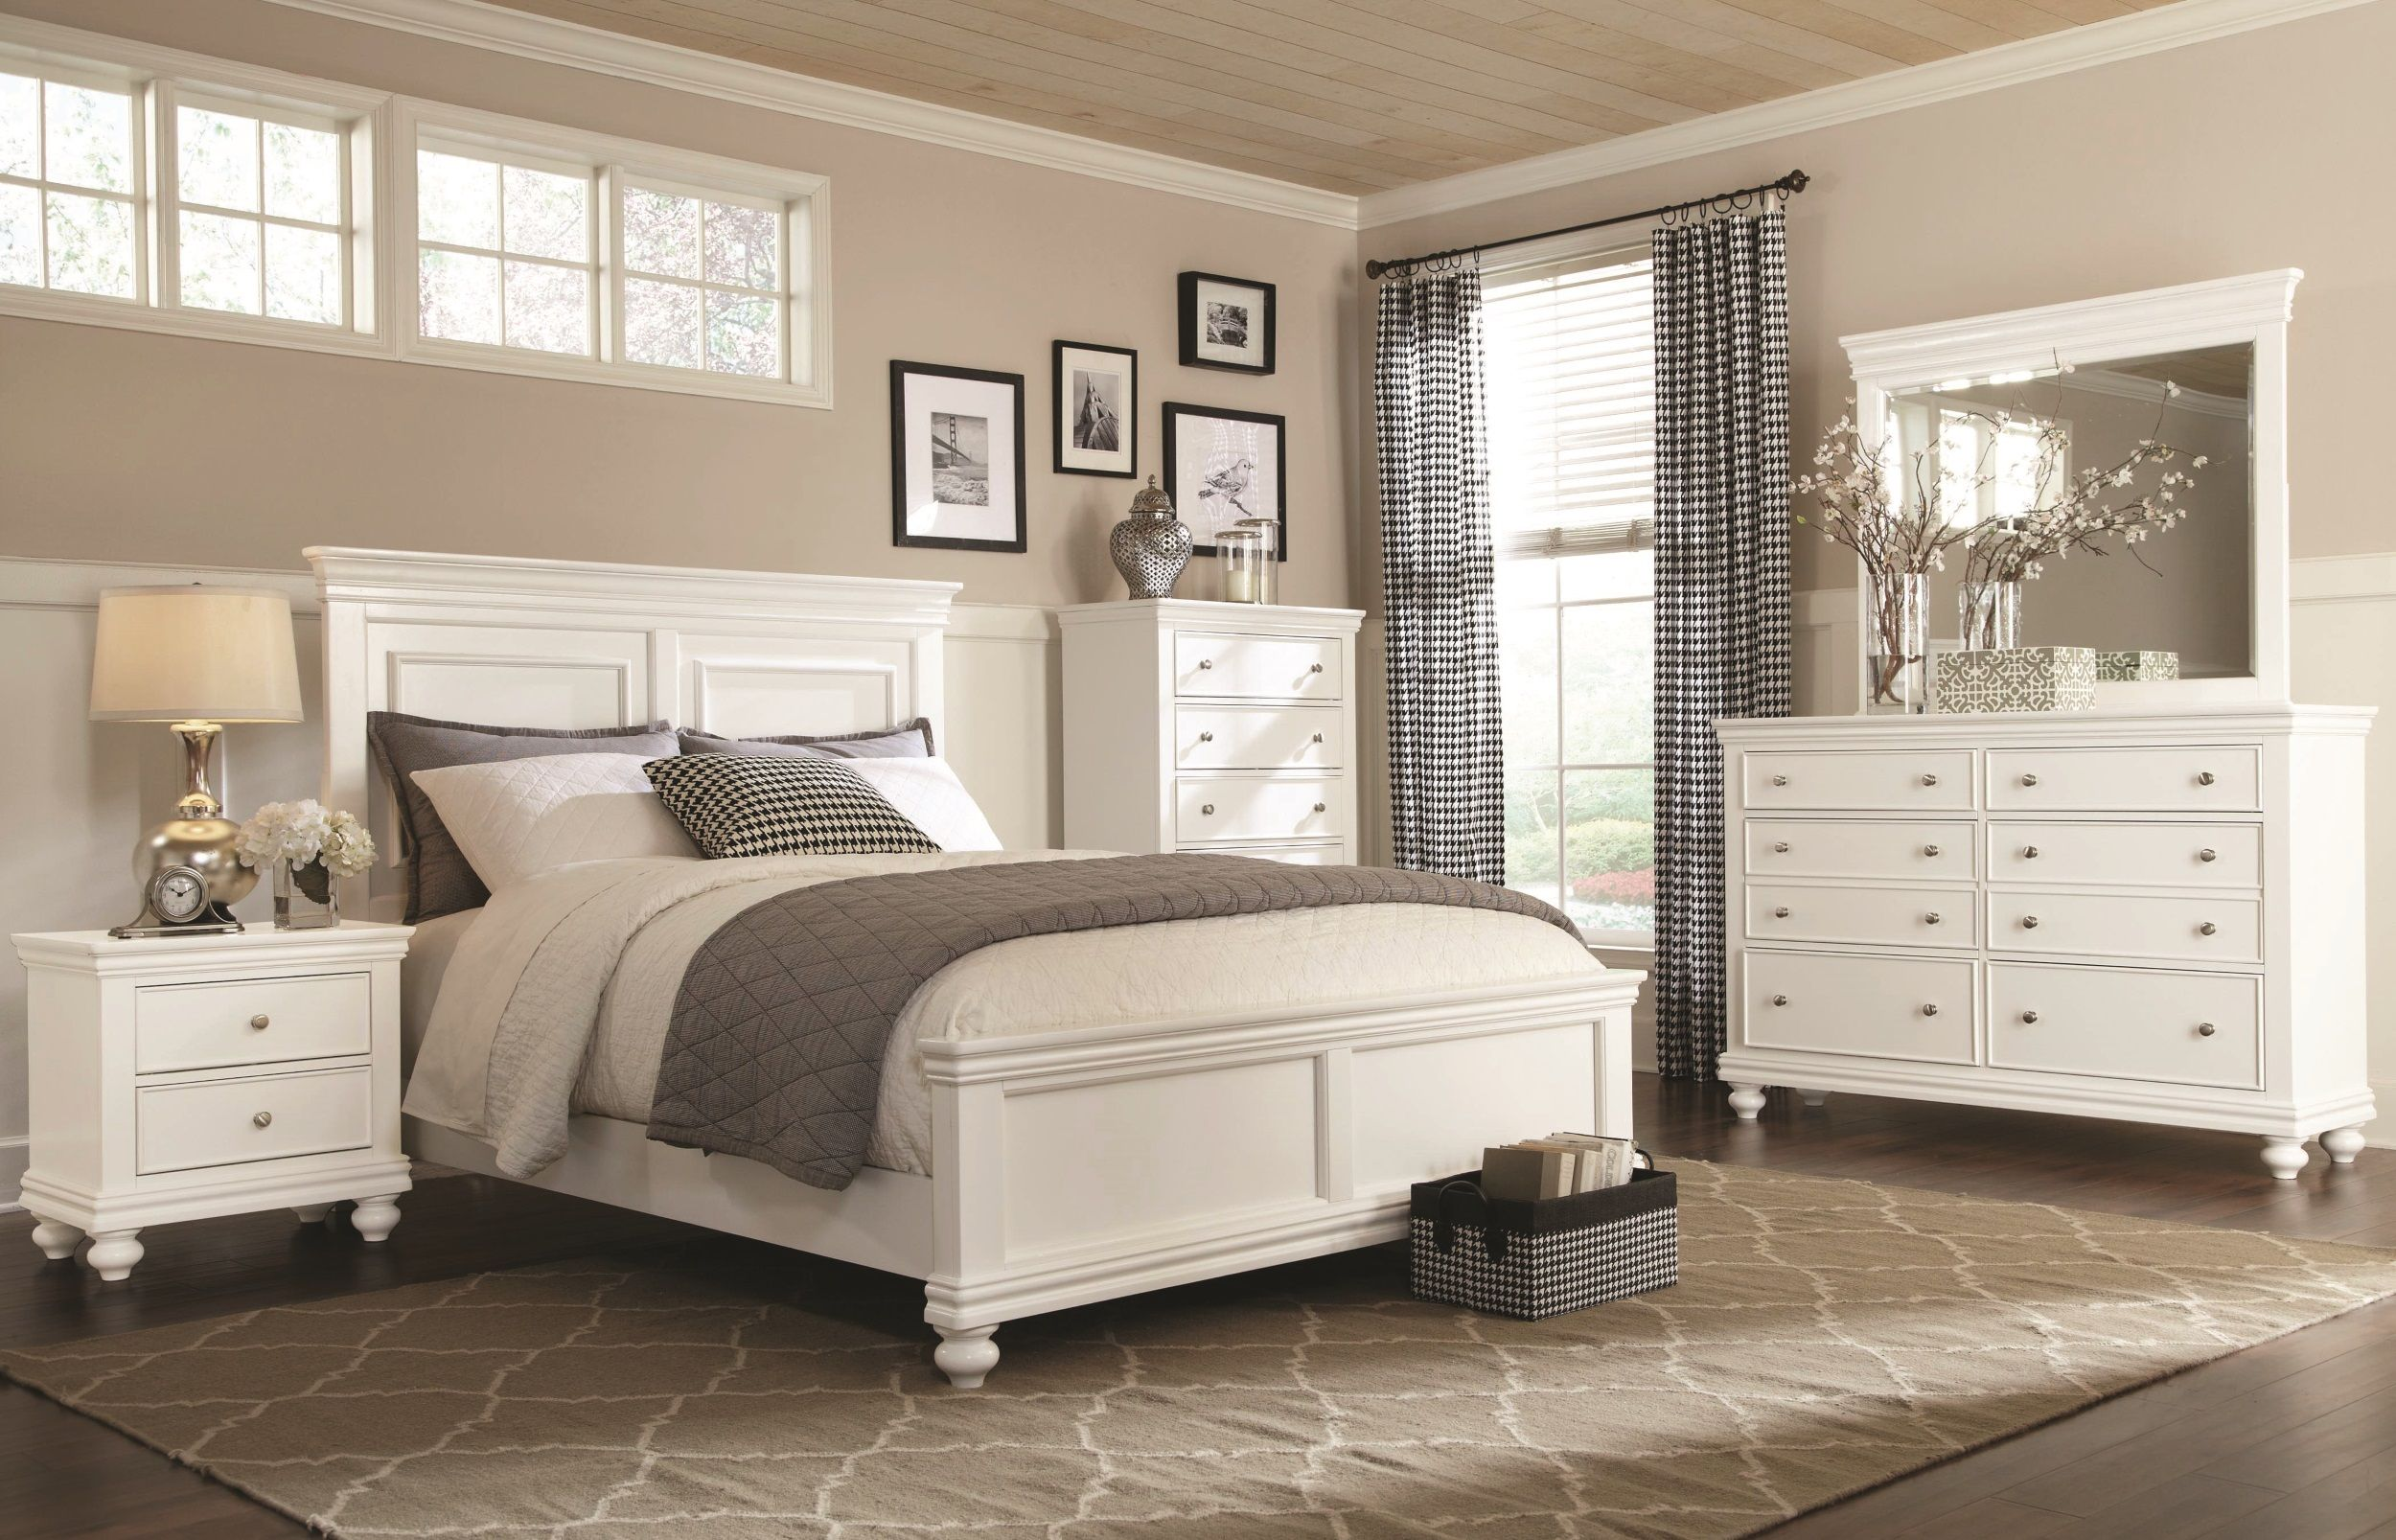 White 4 Piece Queen Bedroom Set Essex Muebles De Dormitorio